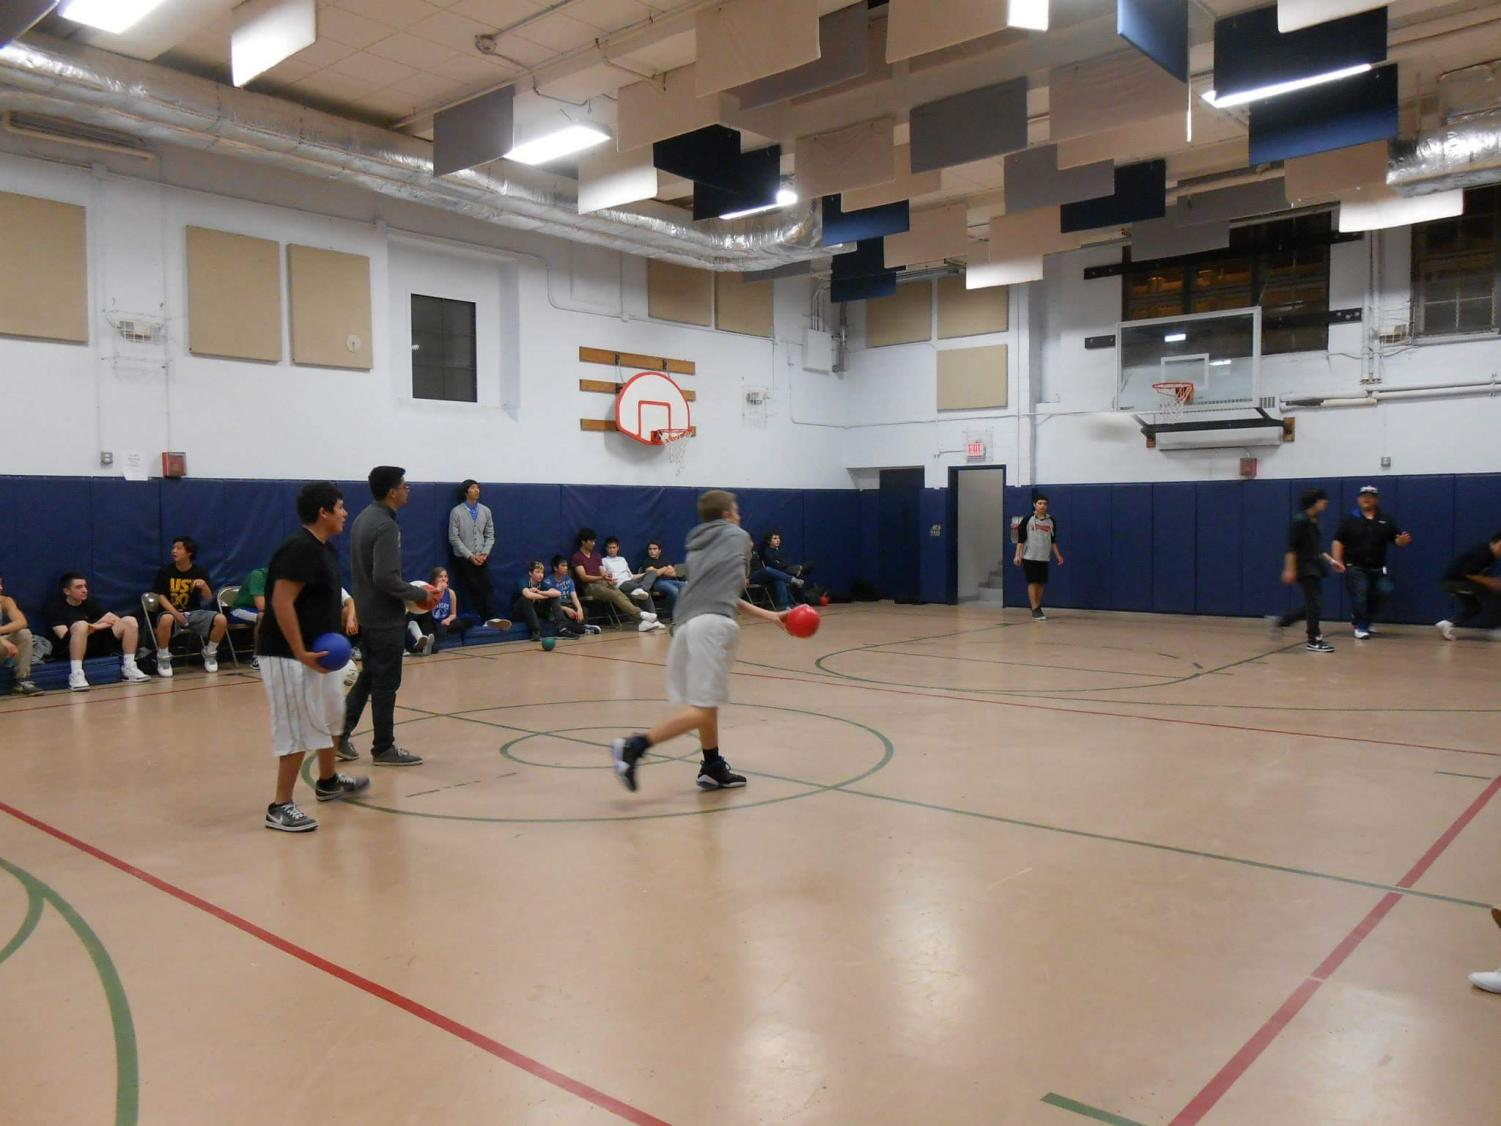 Some members of the PIT Youth Council play an intense game of dodgeball on May 4 in the Landmark building.